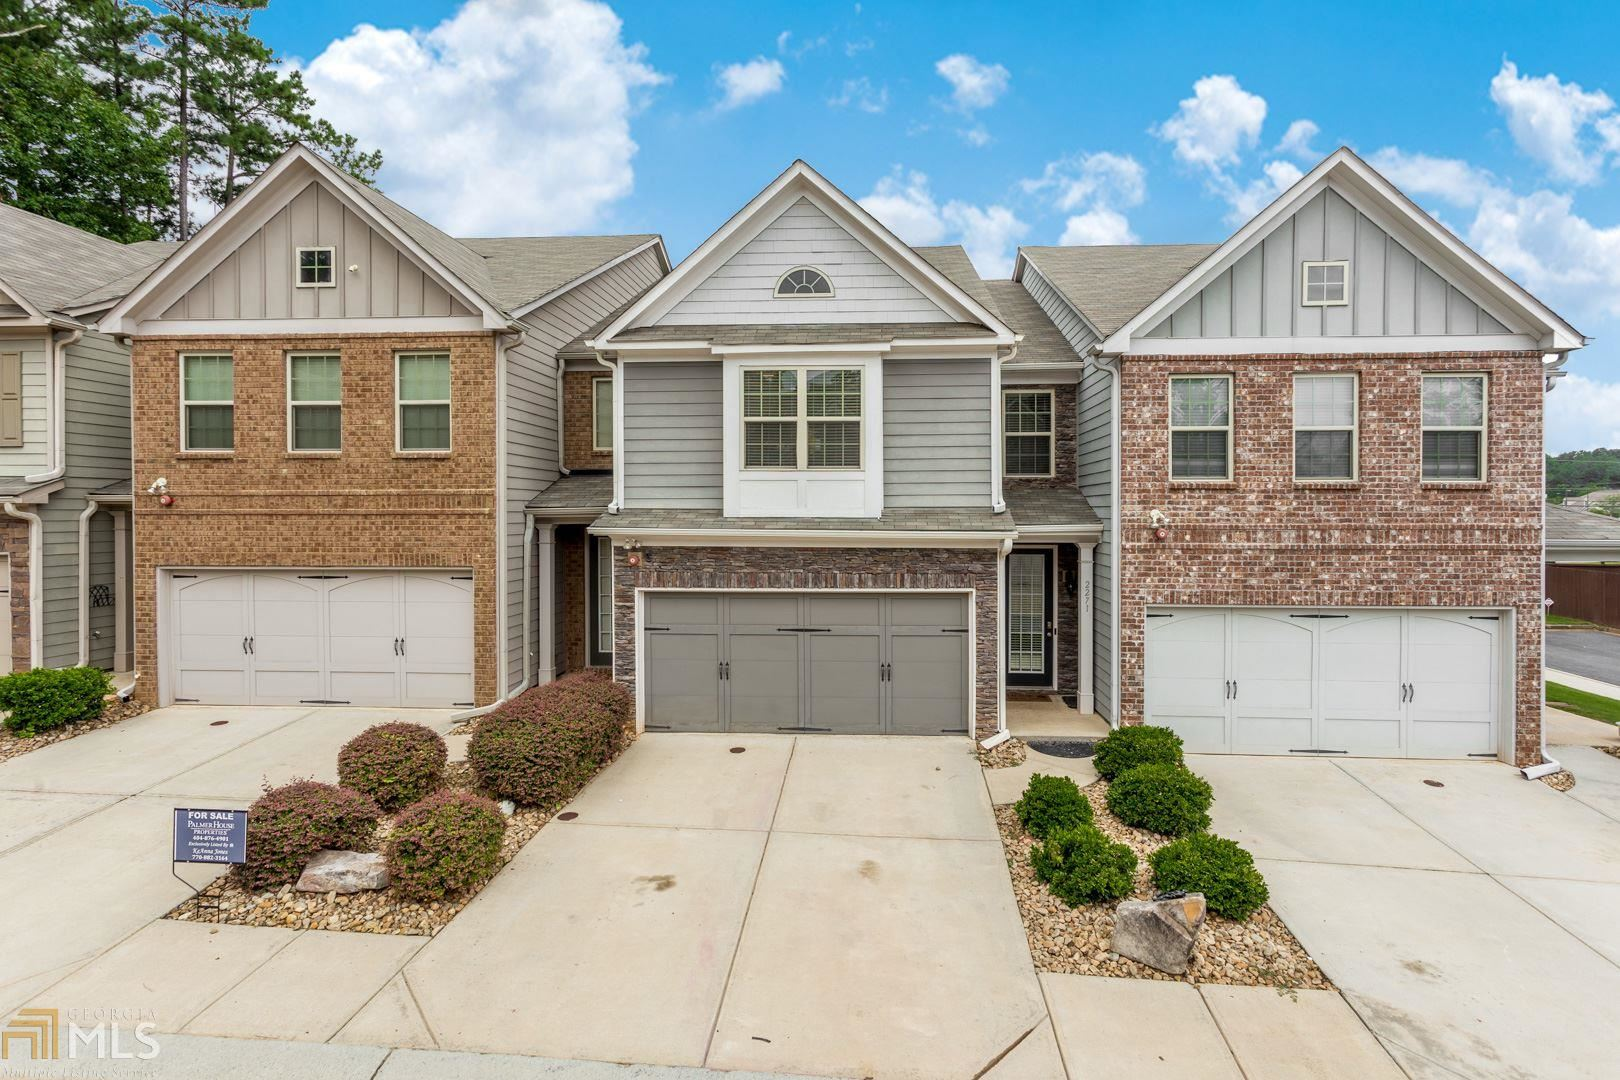 2271 Spicy Pine Dr, Lawrenceville, GA 30044 - MLS#: 8758277